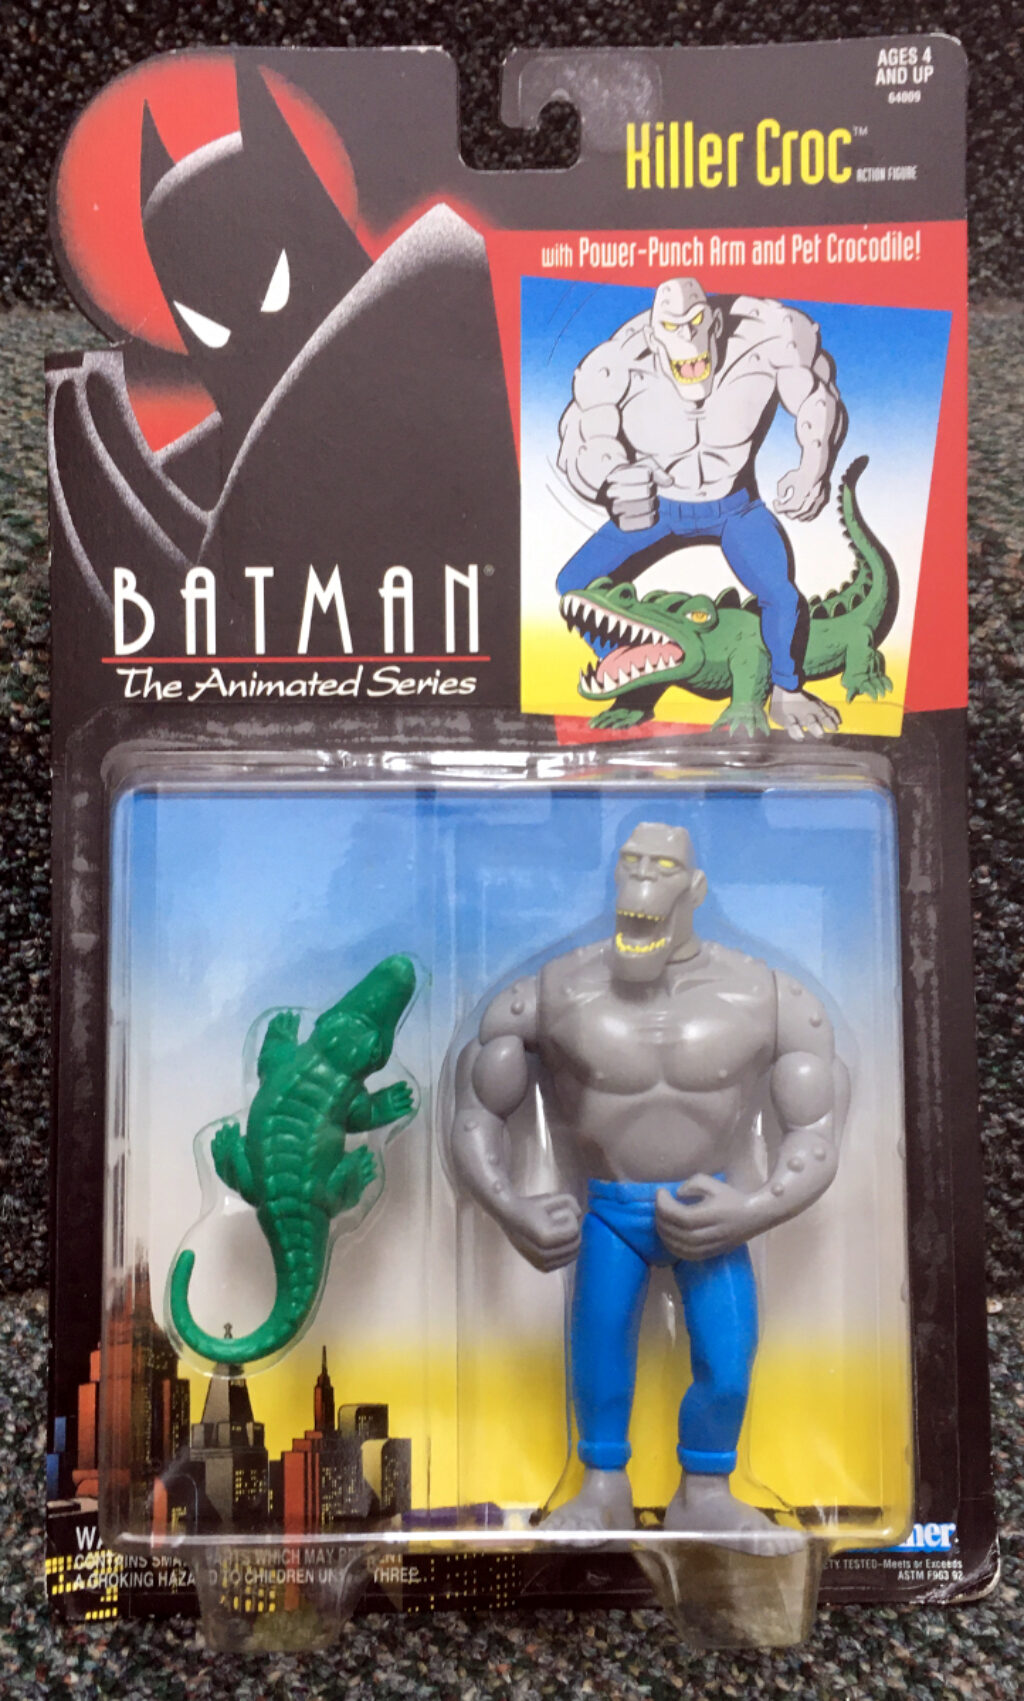 kenner batman the animated series killer croc figure 1